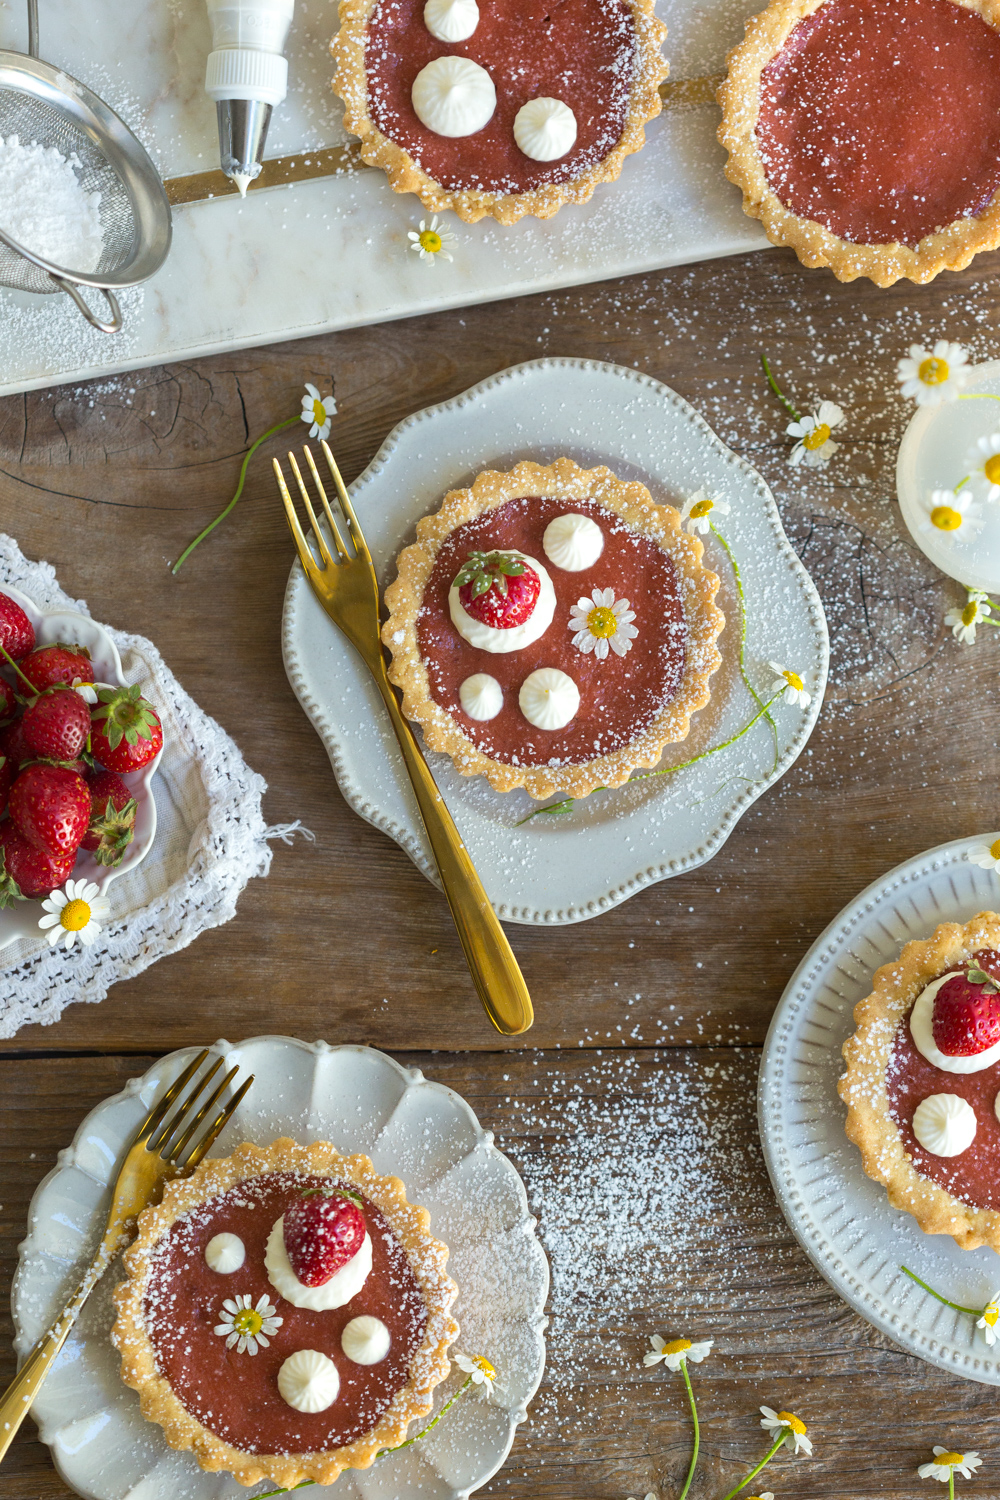 Strawberry Rhubarb Curd Tartlets from Baking The Goods